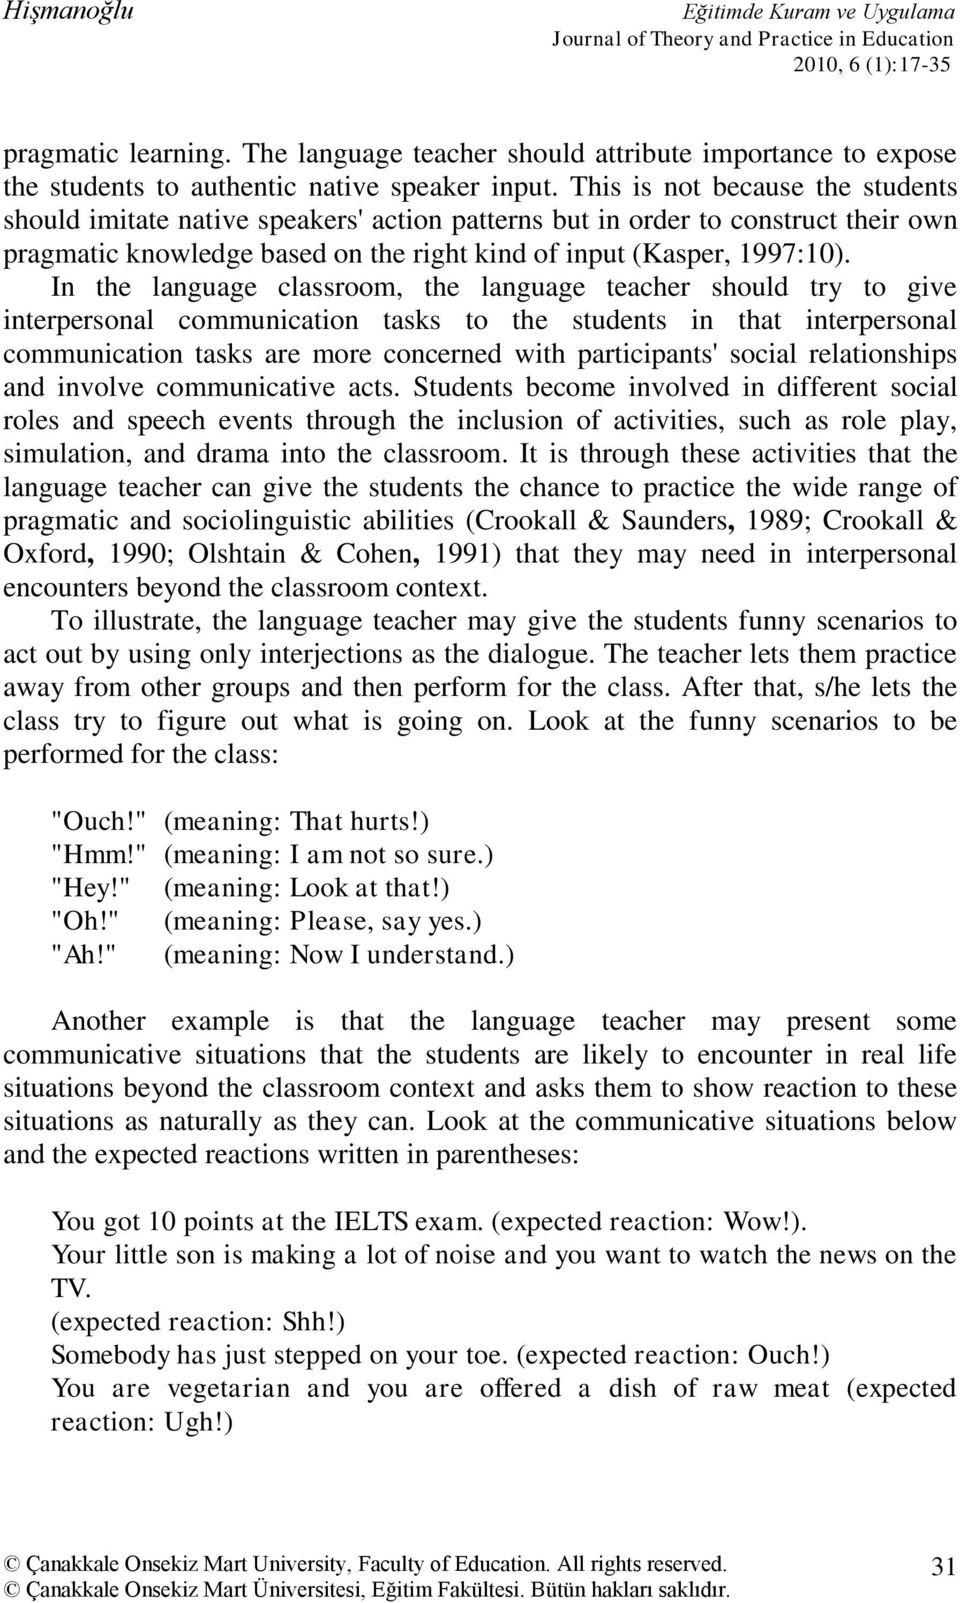 In the language classroom, the language teacher should try to give interpersonal communication tasks to the students in that interpersonal communication tasks are more concerned with participants'